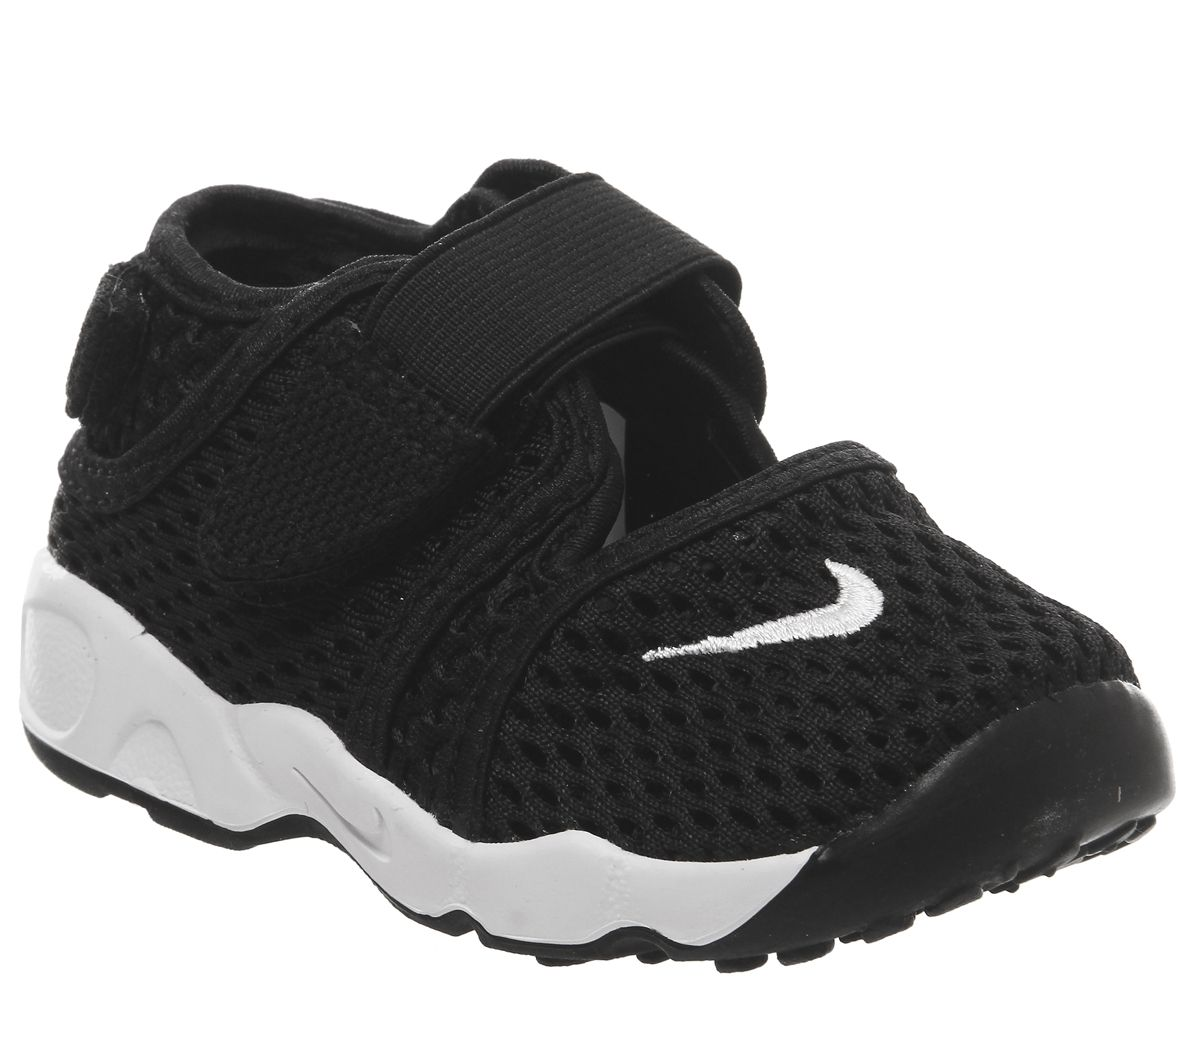 03deb4c79 Nike Rift Infant Trainers Black White - Unisex